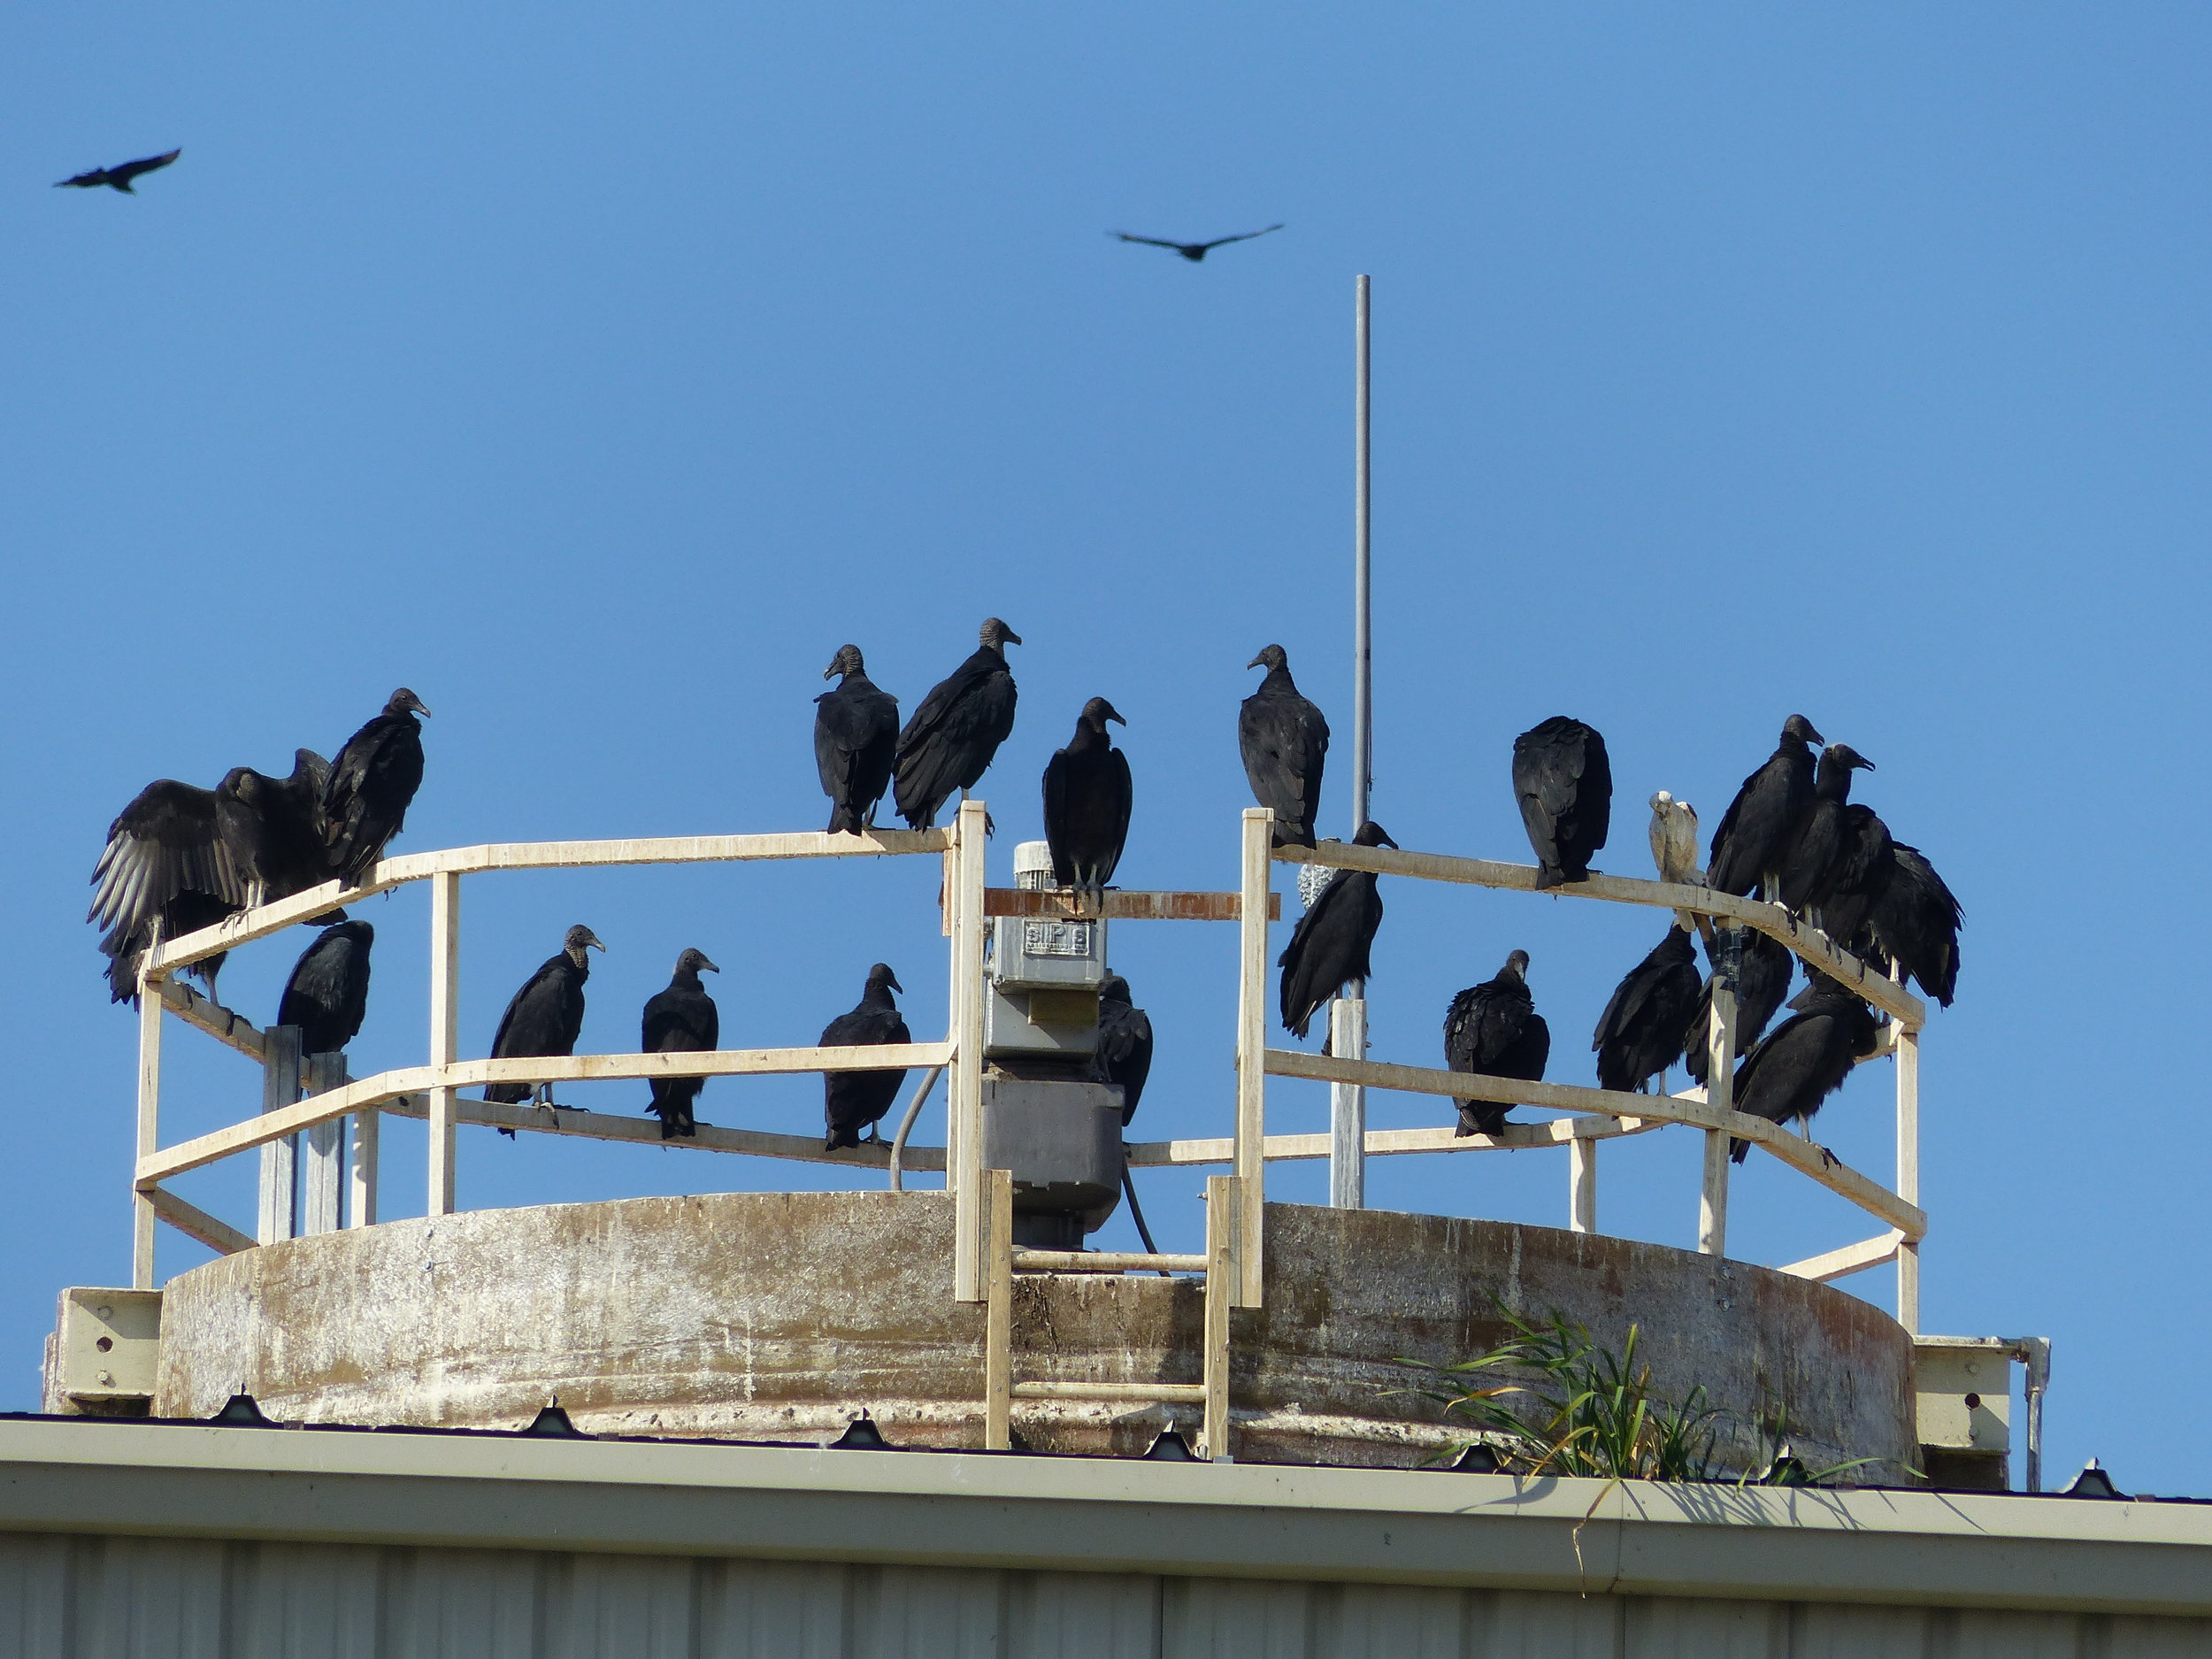 A vulture roost in Reading, PA, that Zoey observed during her time as an HMS conservation science trainee.